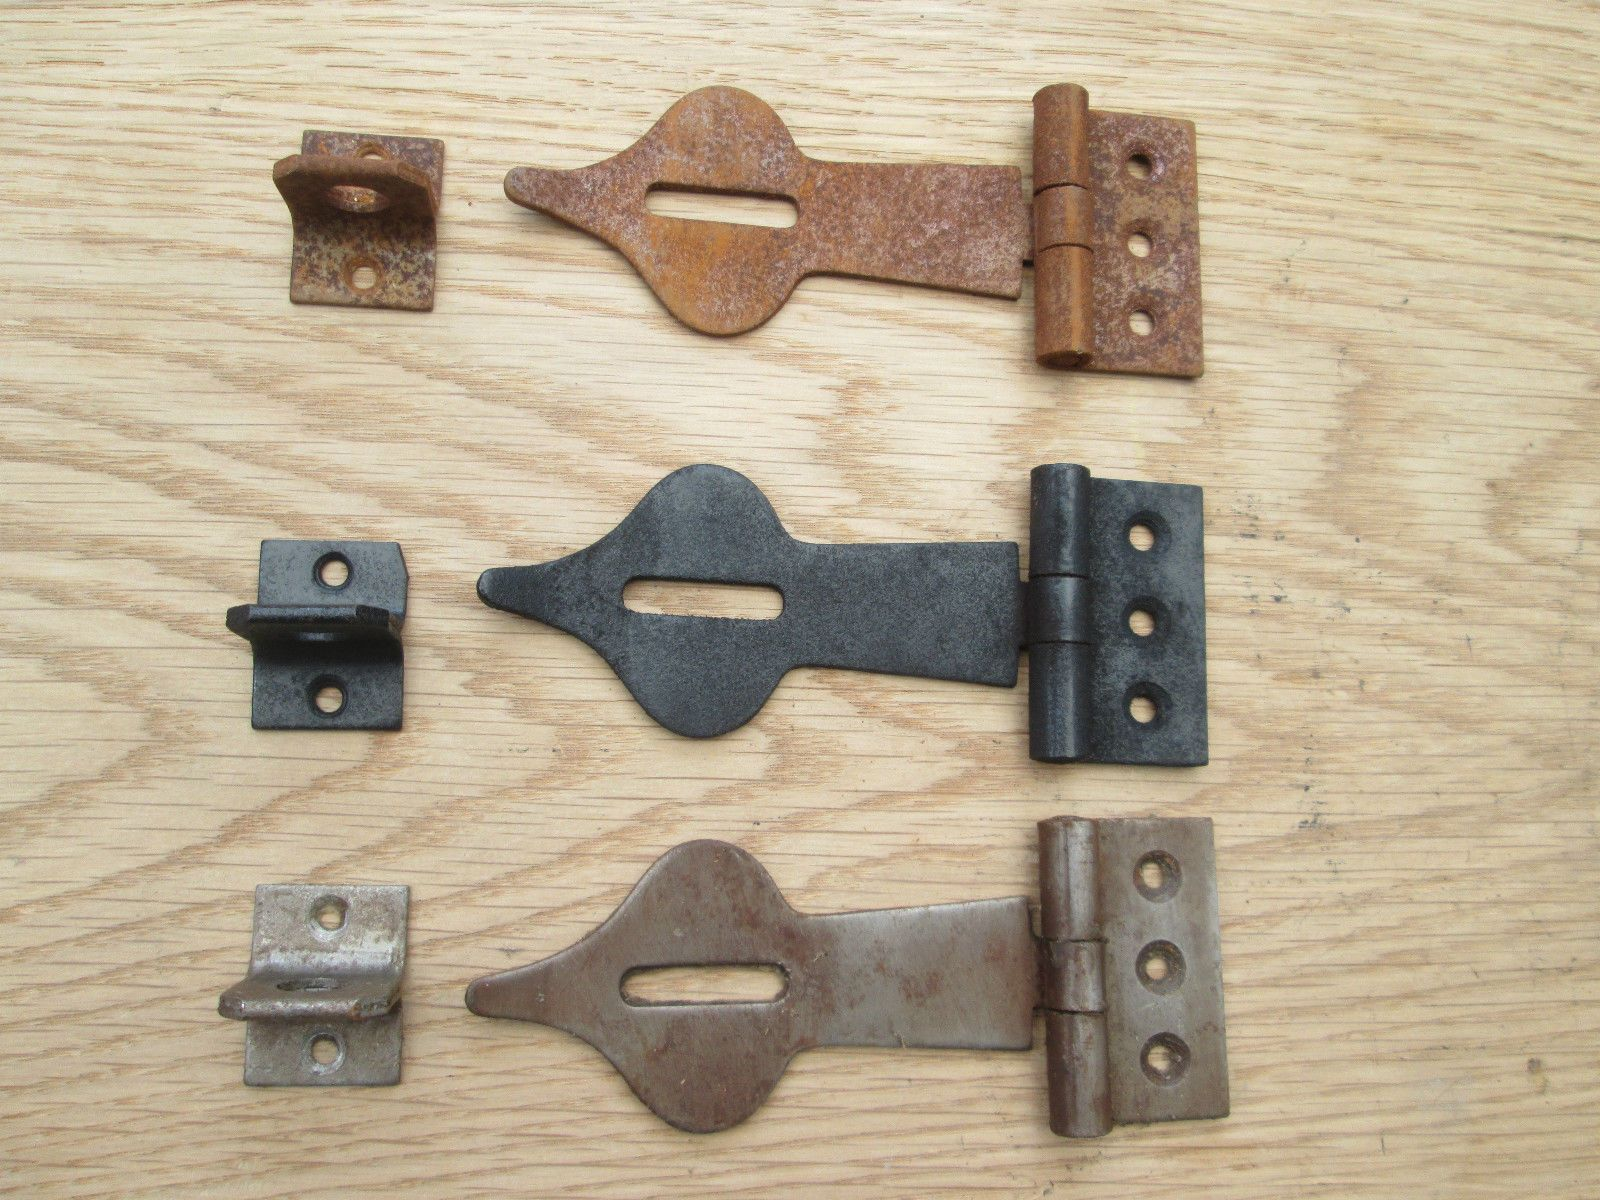 "Vintage Forged Iron Cabinet Latch Copper Metal Hammered Design 3//8"" Offset"